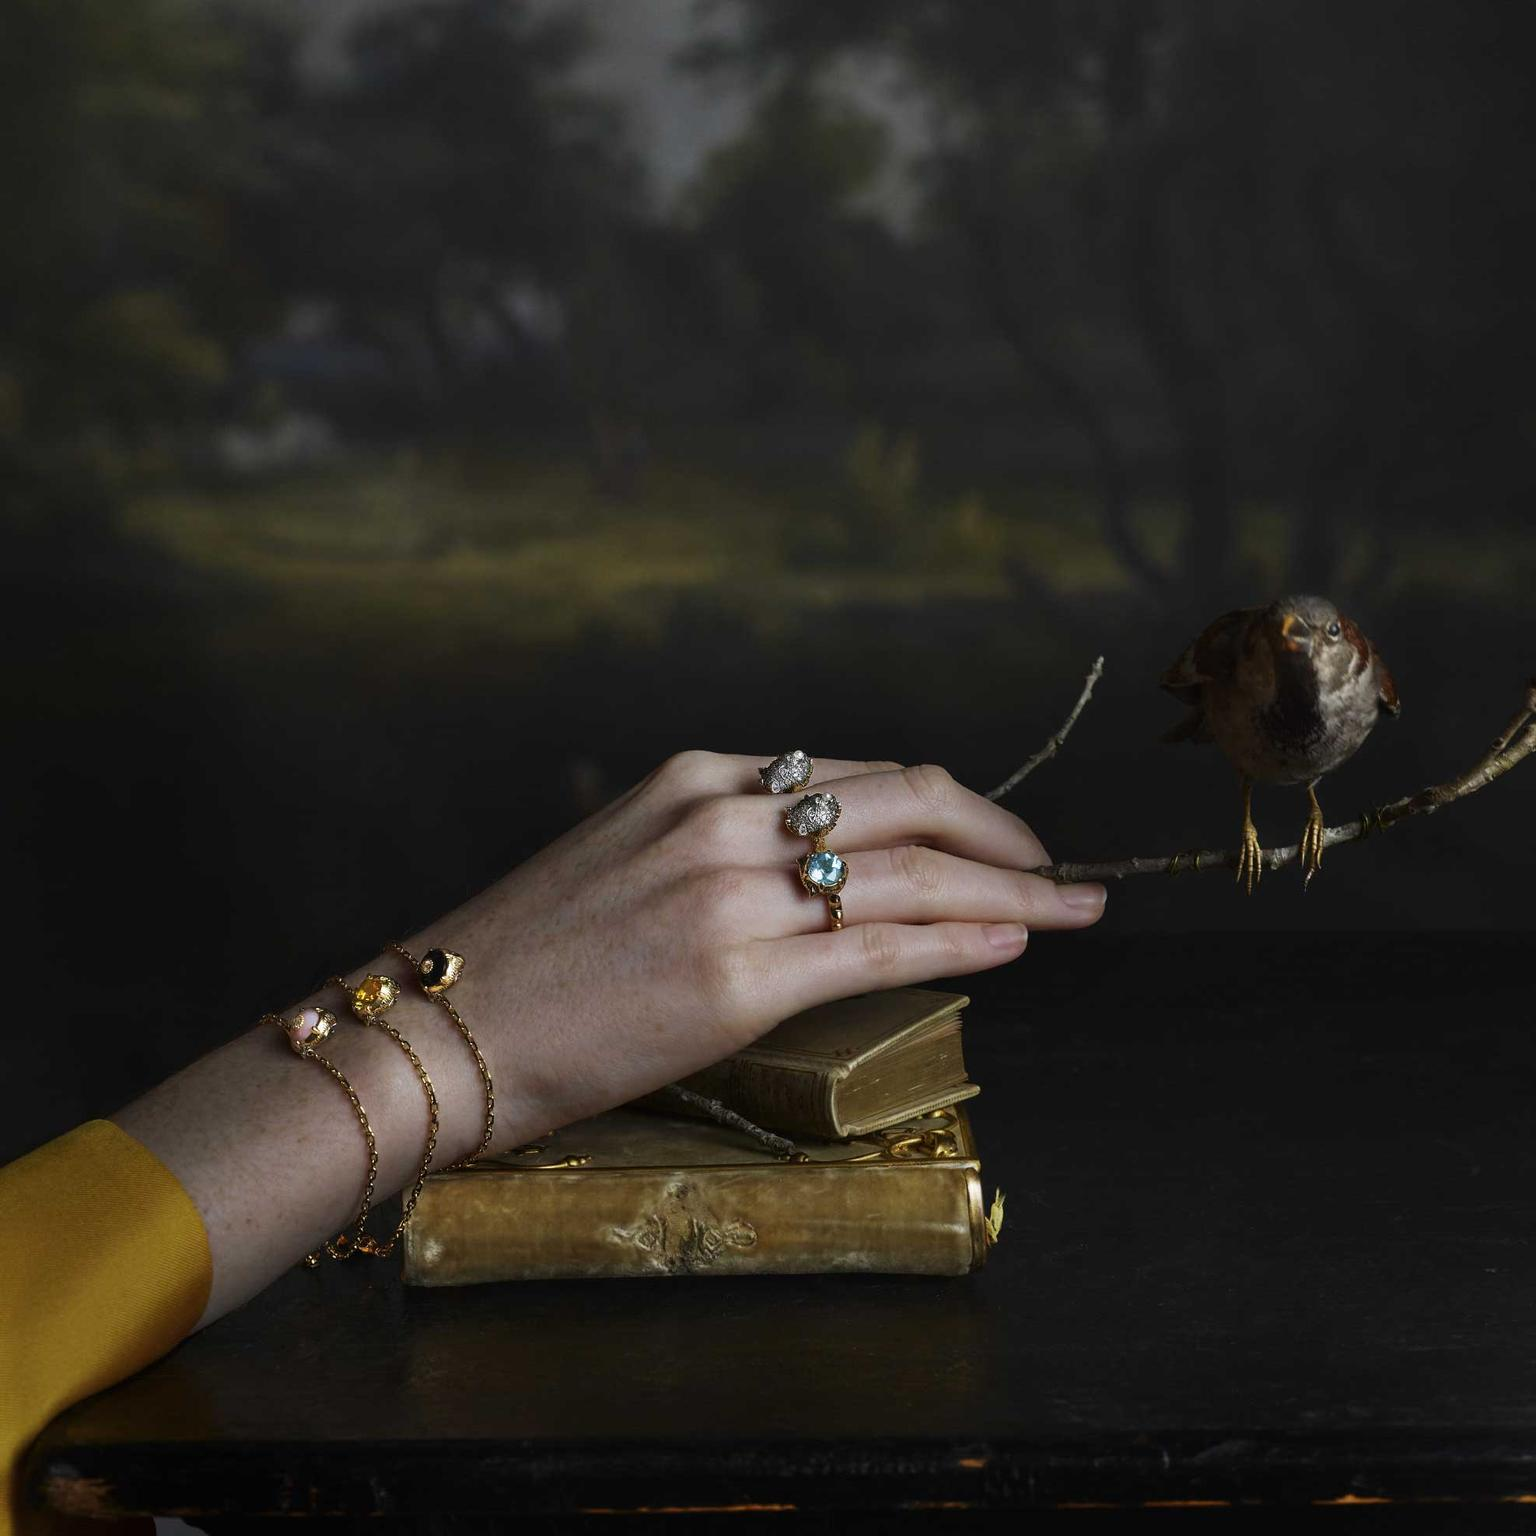 Gucci Le Marche des Merveilles jewels in portrait rings and bracelet Julia Hetta photography